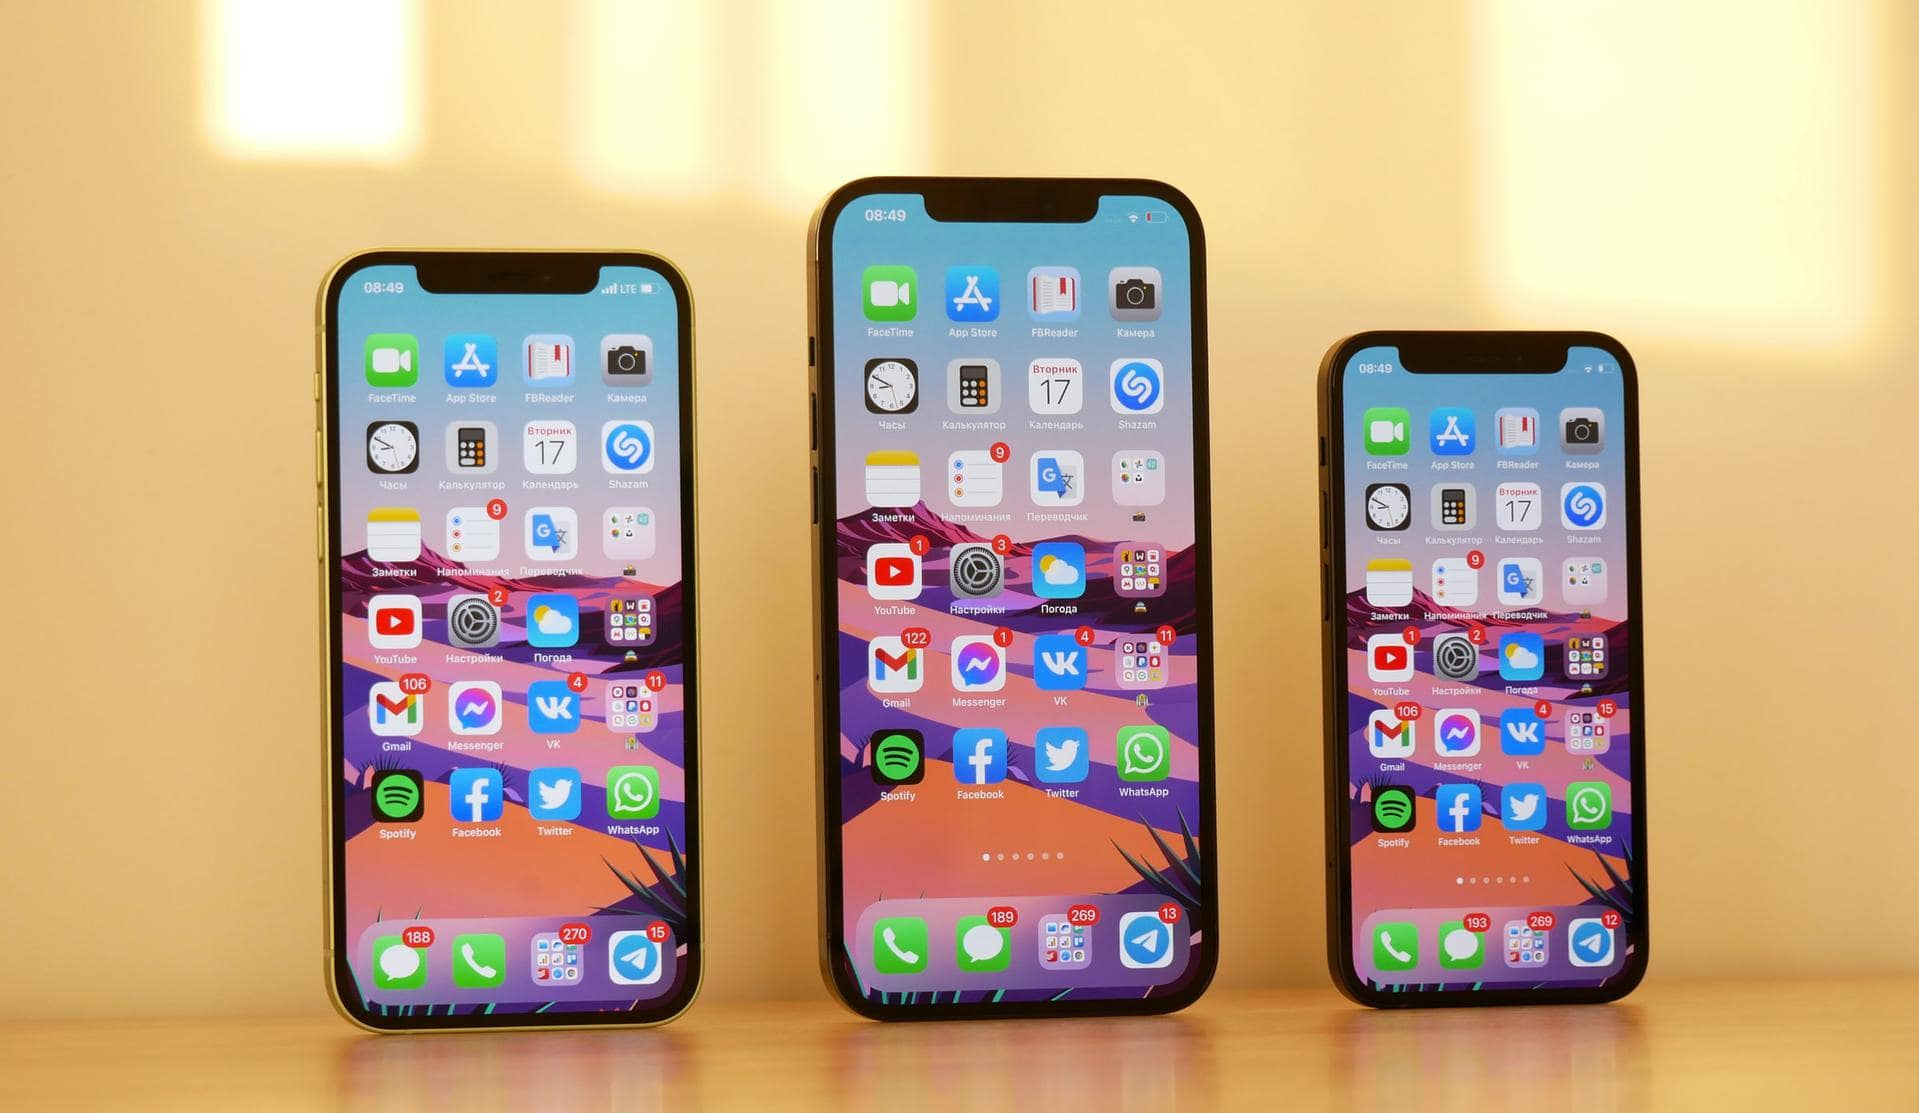 How to make folders on iPhone? Easy Step-by-step guide